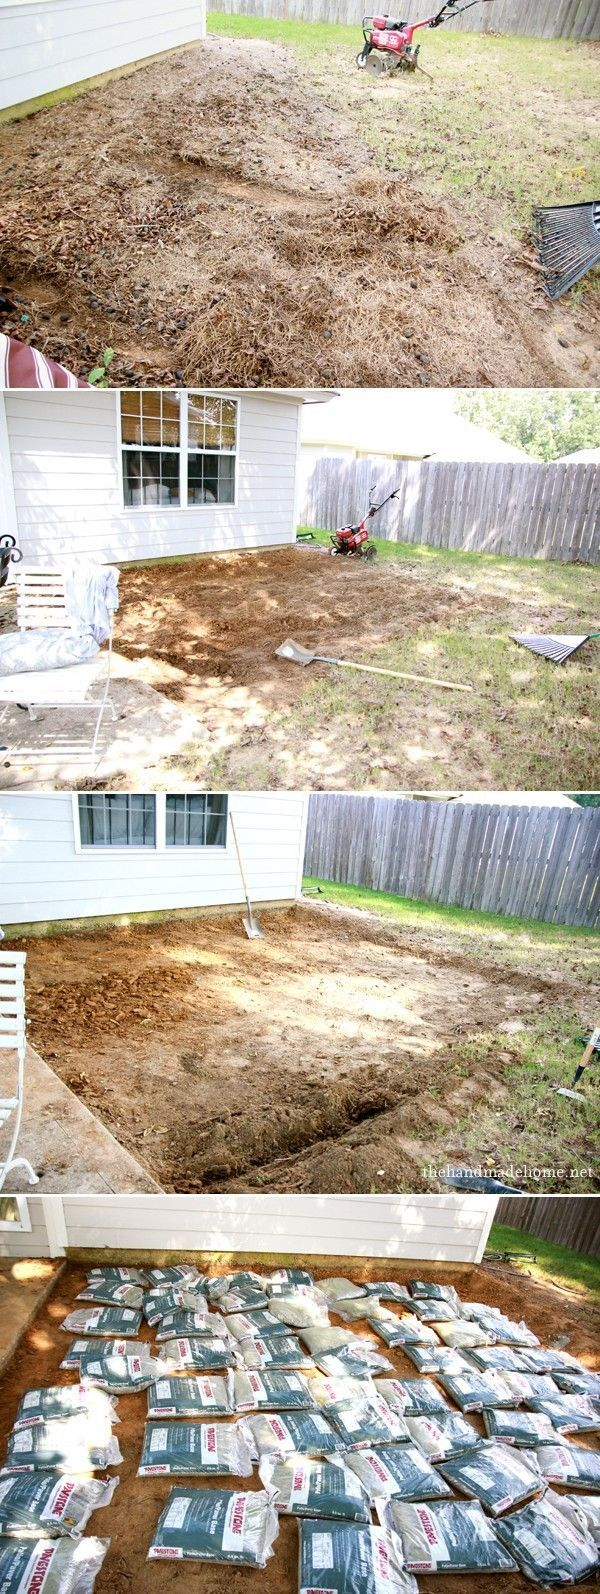 backyard bliss: installing patio pavers and a fire pit {diy patio} {diy fire pit}